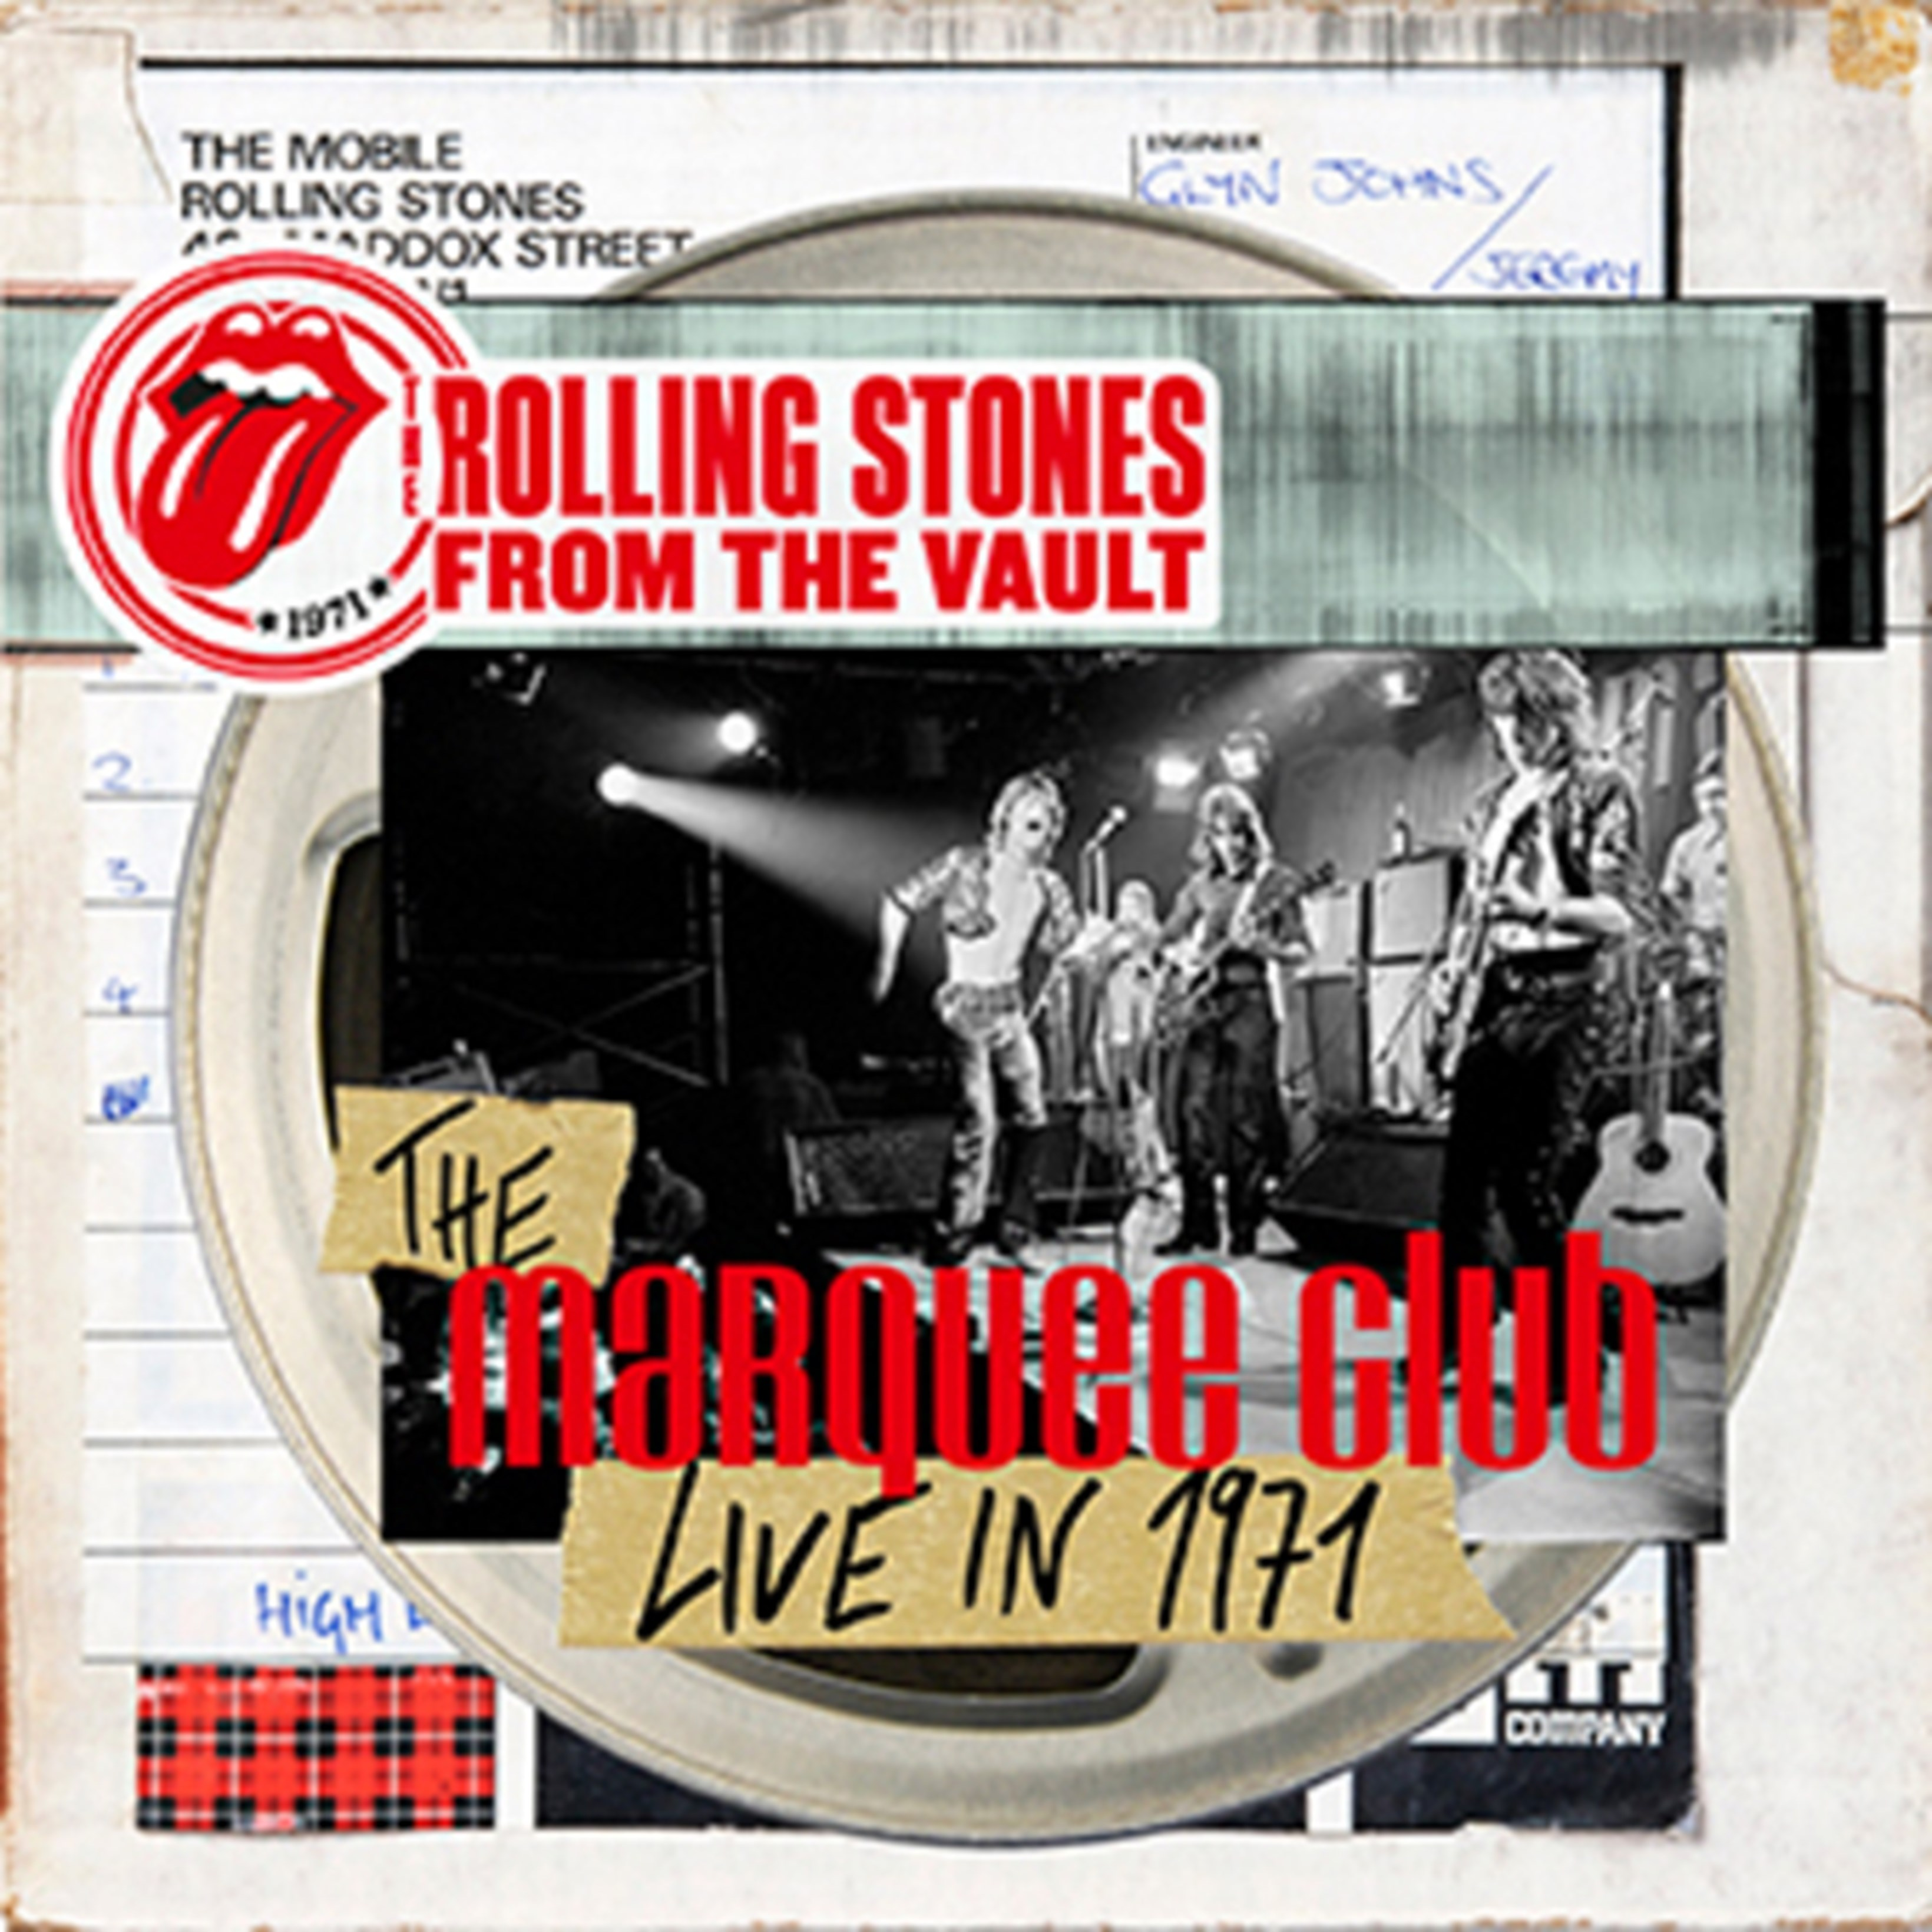 The Rolling Stones: From the Vault - 1971 - 1